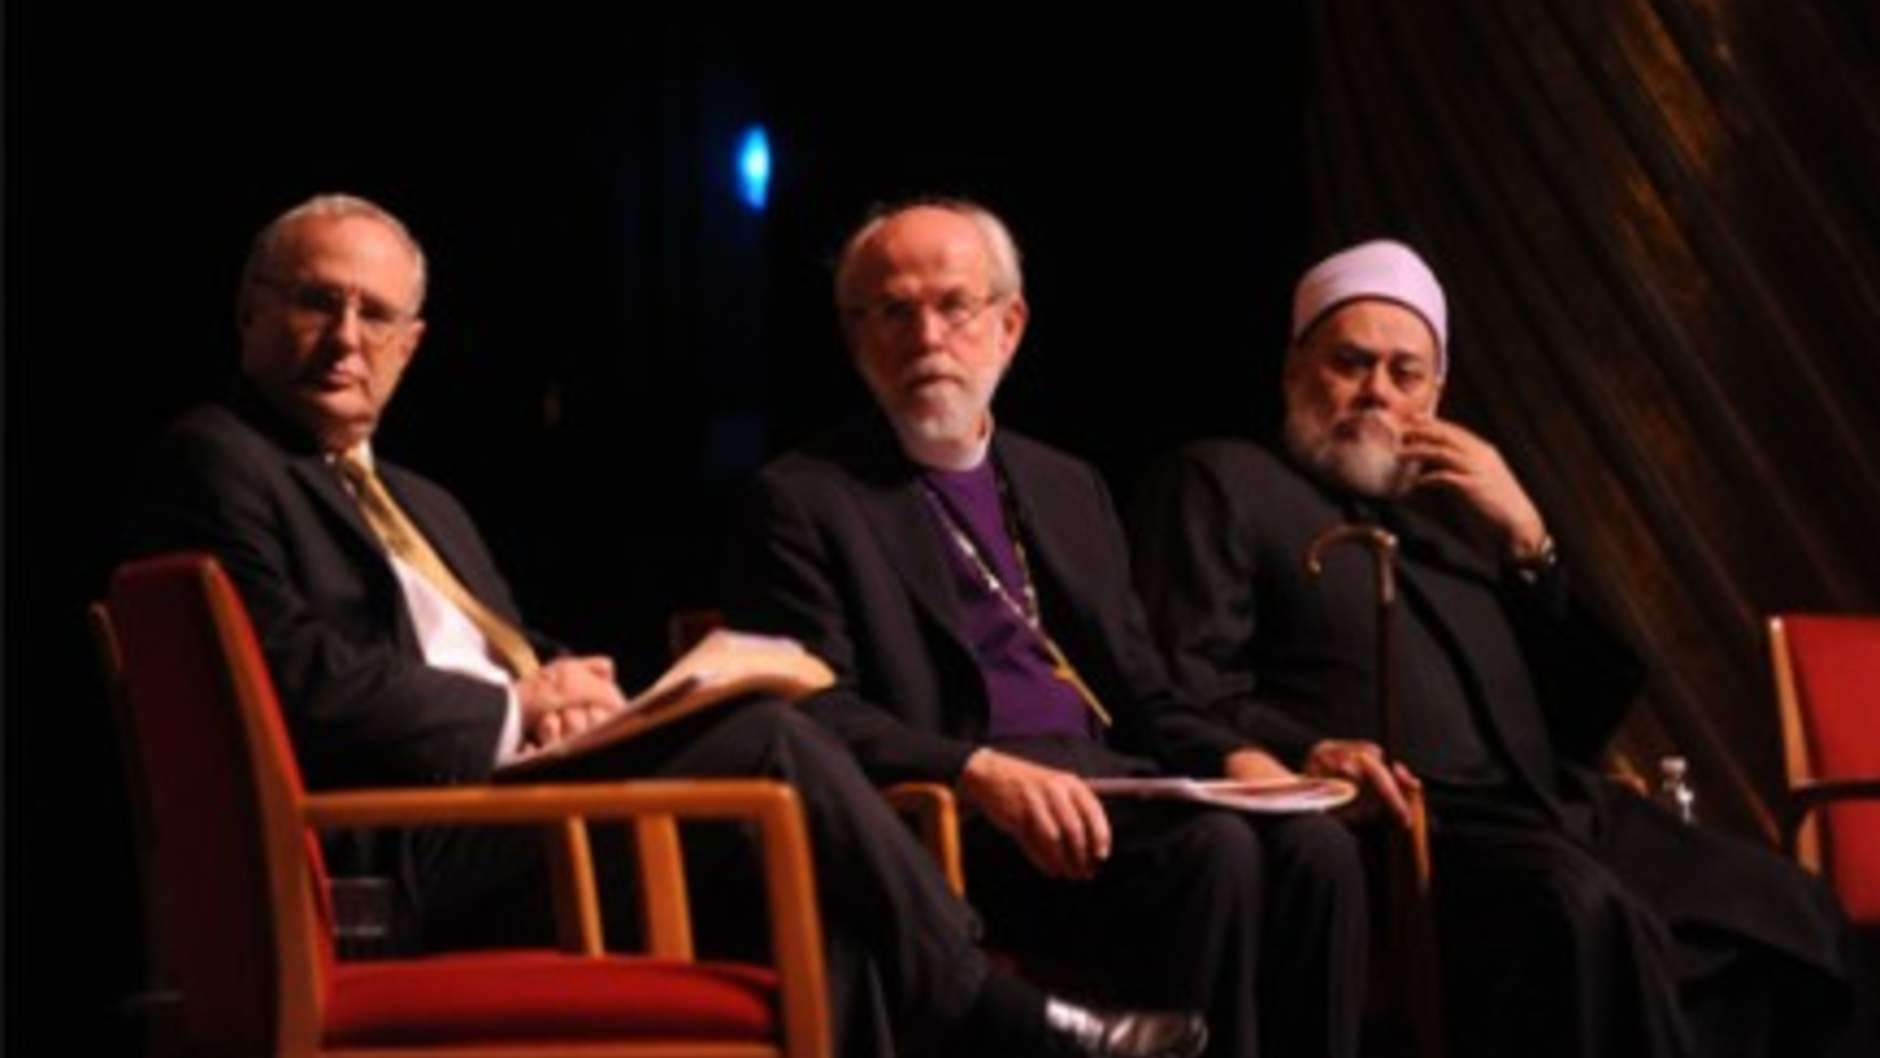 Coexist and religious leaders explore building bridges